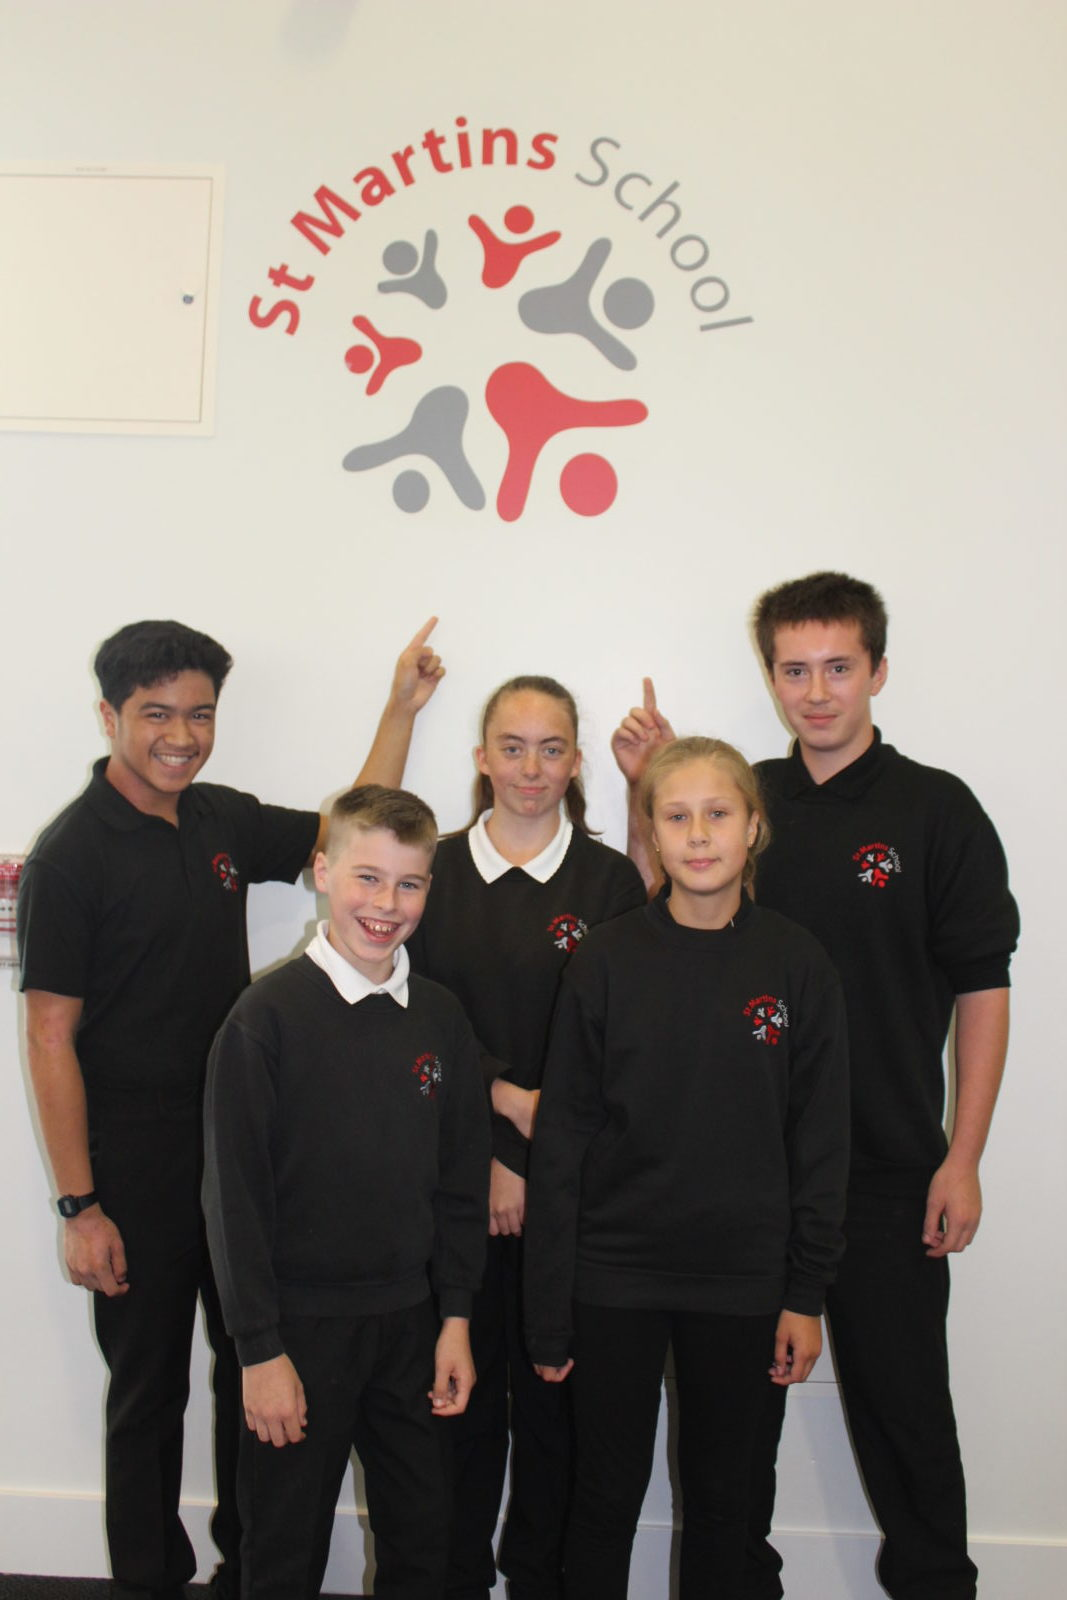 St Martins School >> St Martins School Derby Special Educational Needs Sen